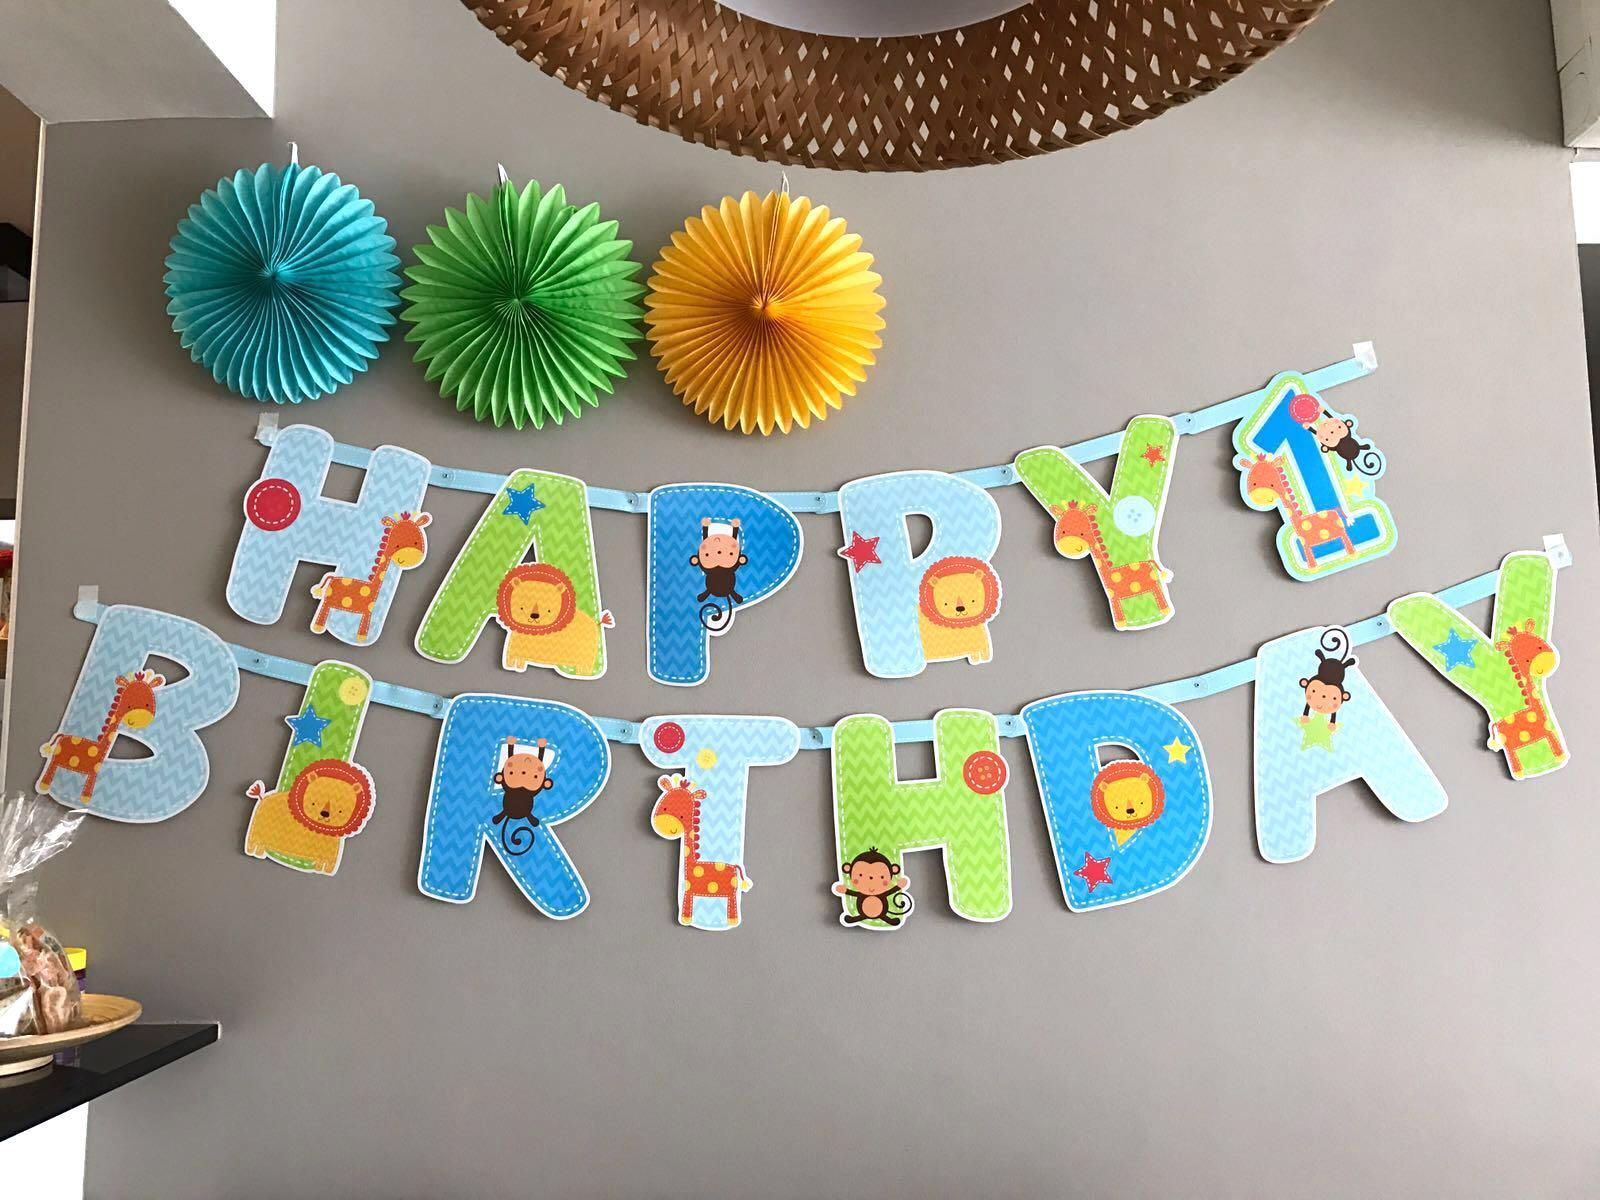 Happy 1st Birthday Banner Hobbies Toys Stationery Craft Occasions Party Supplies On Carousell